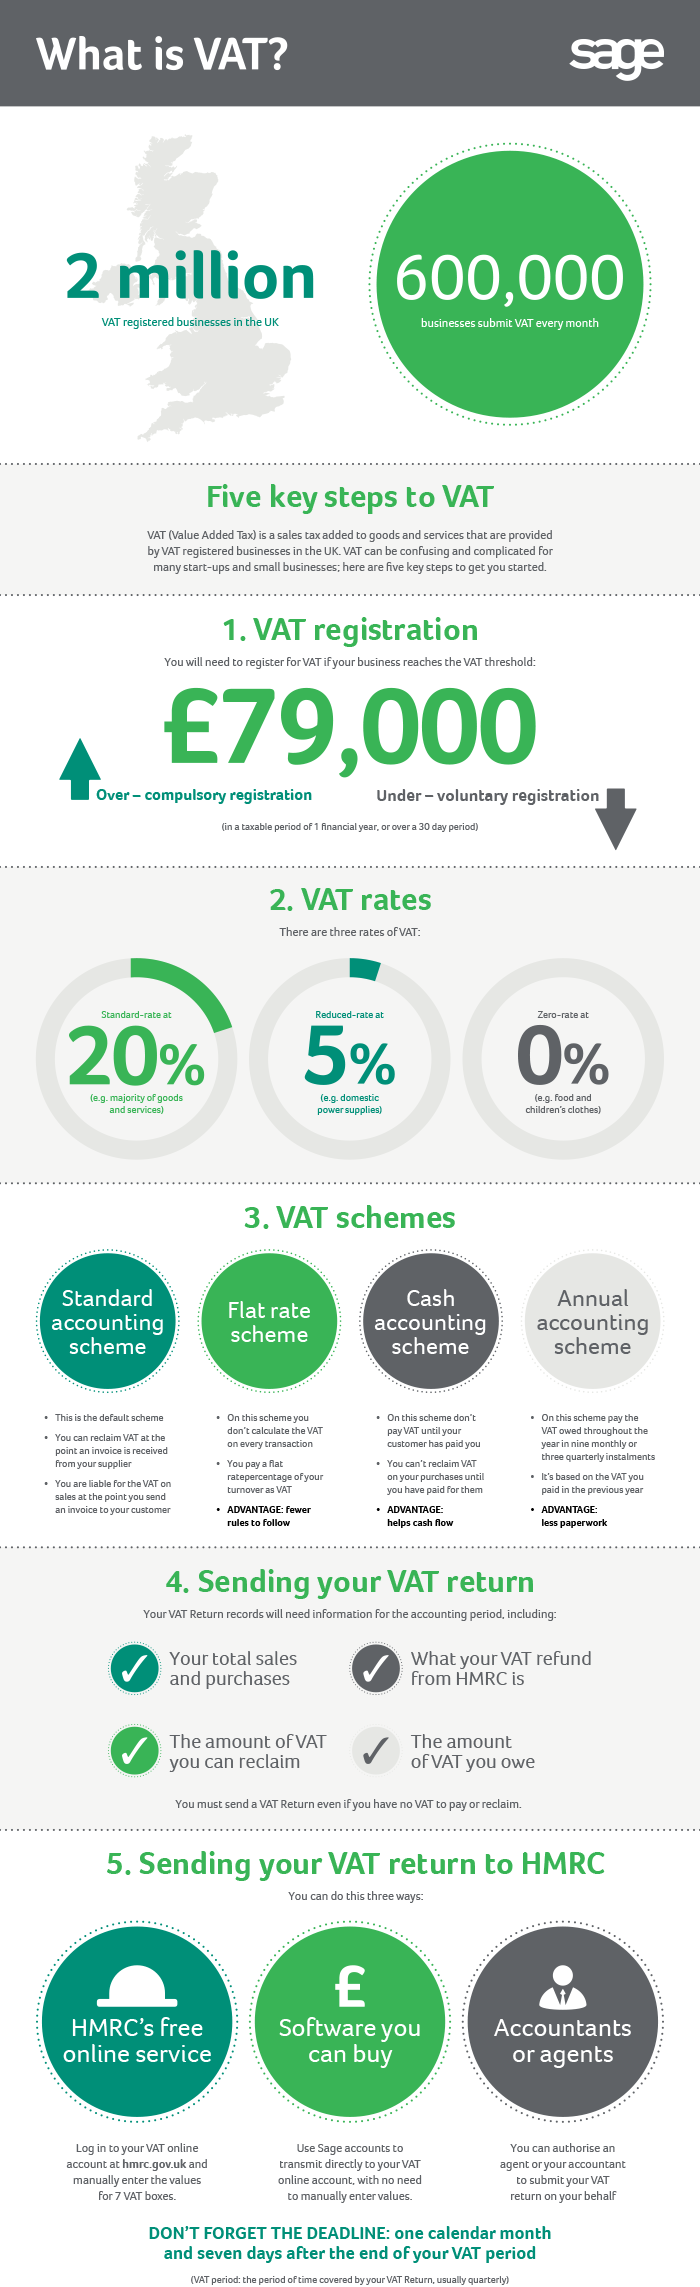 VAT explained - an infographic from Sage UK